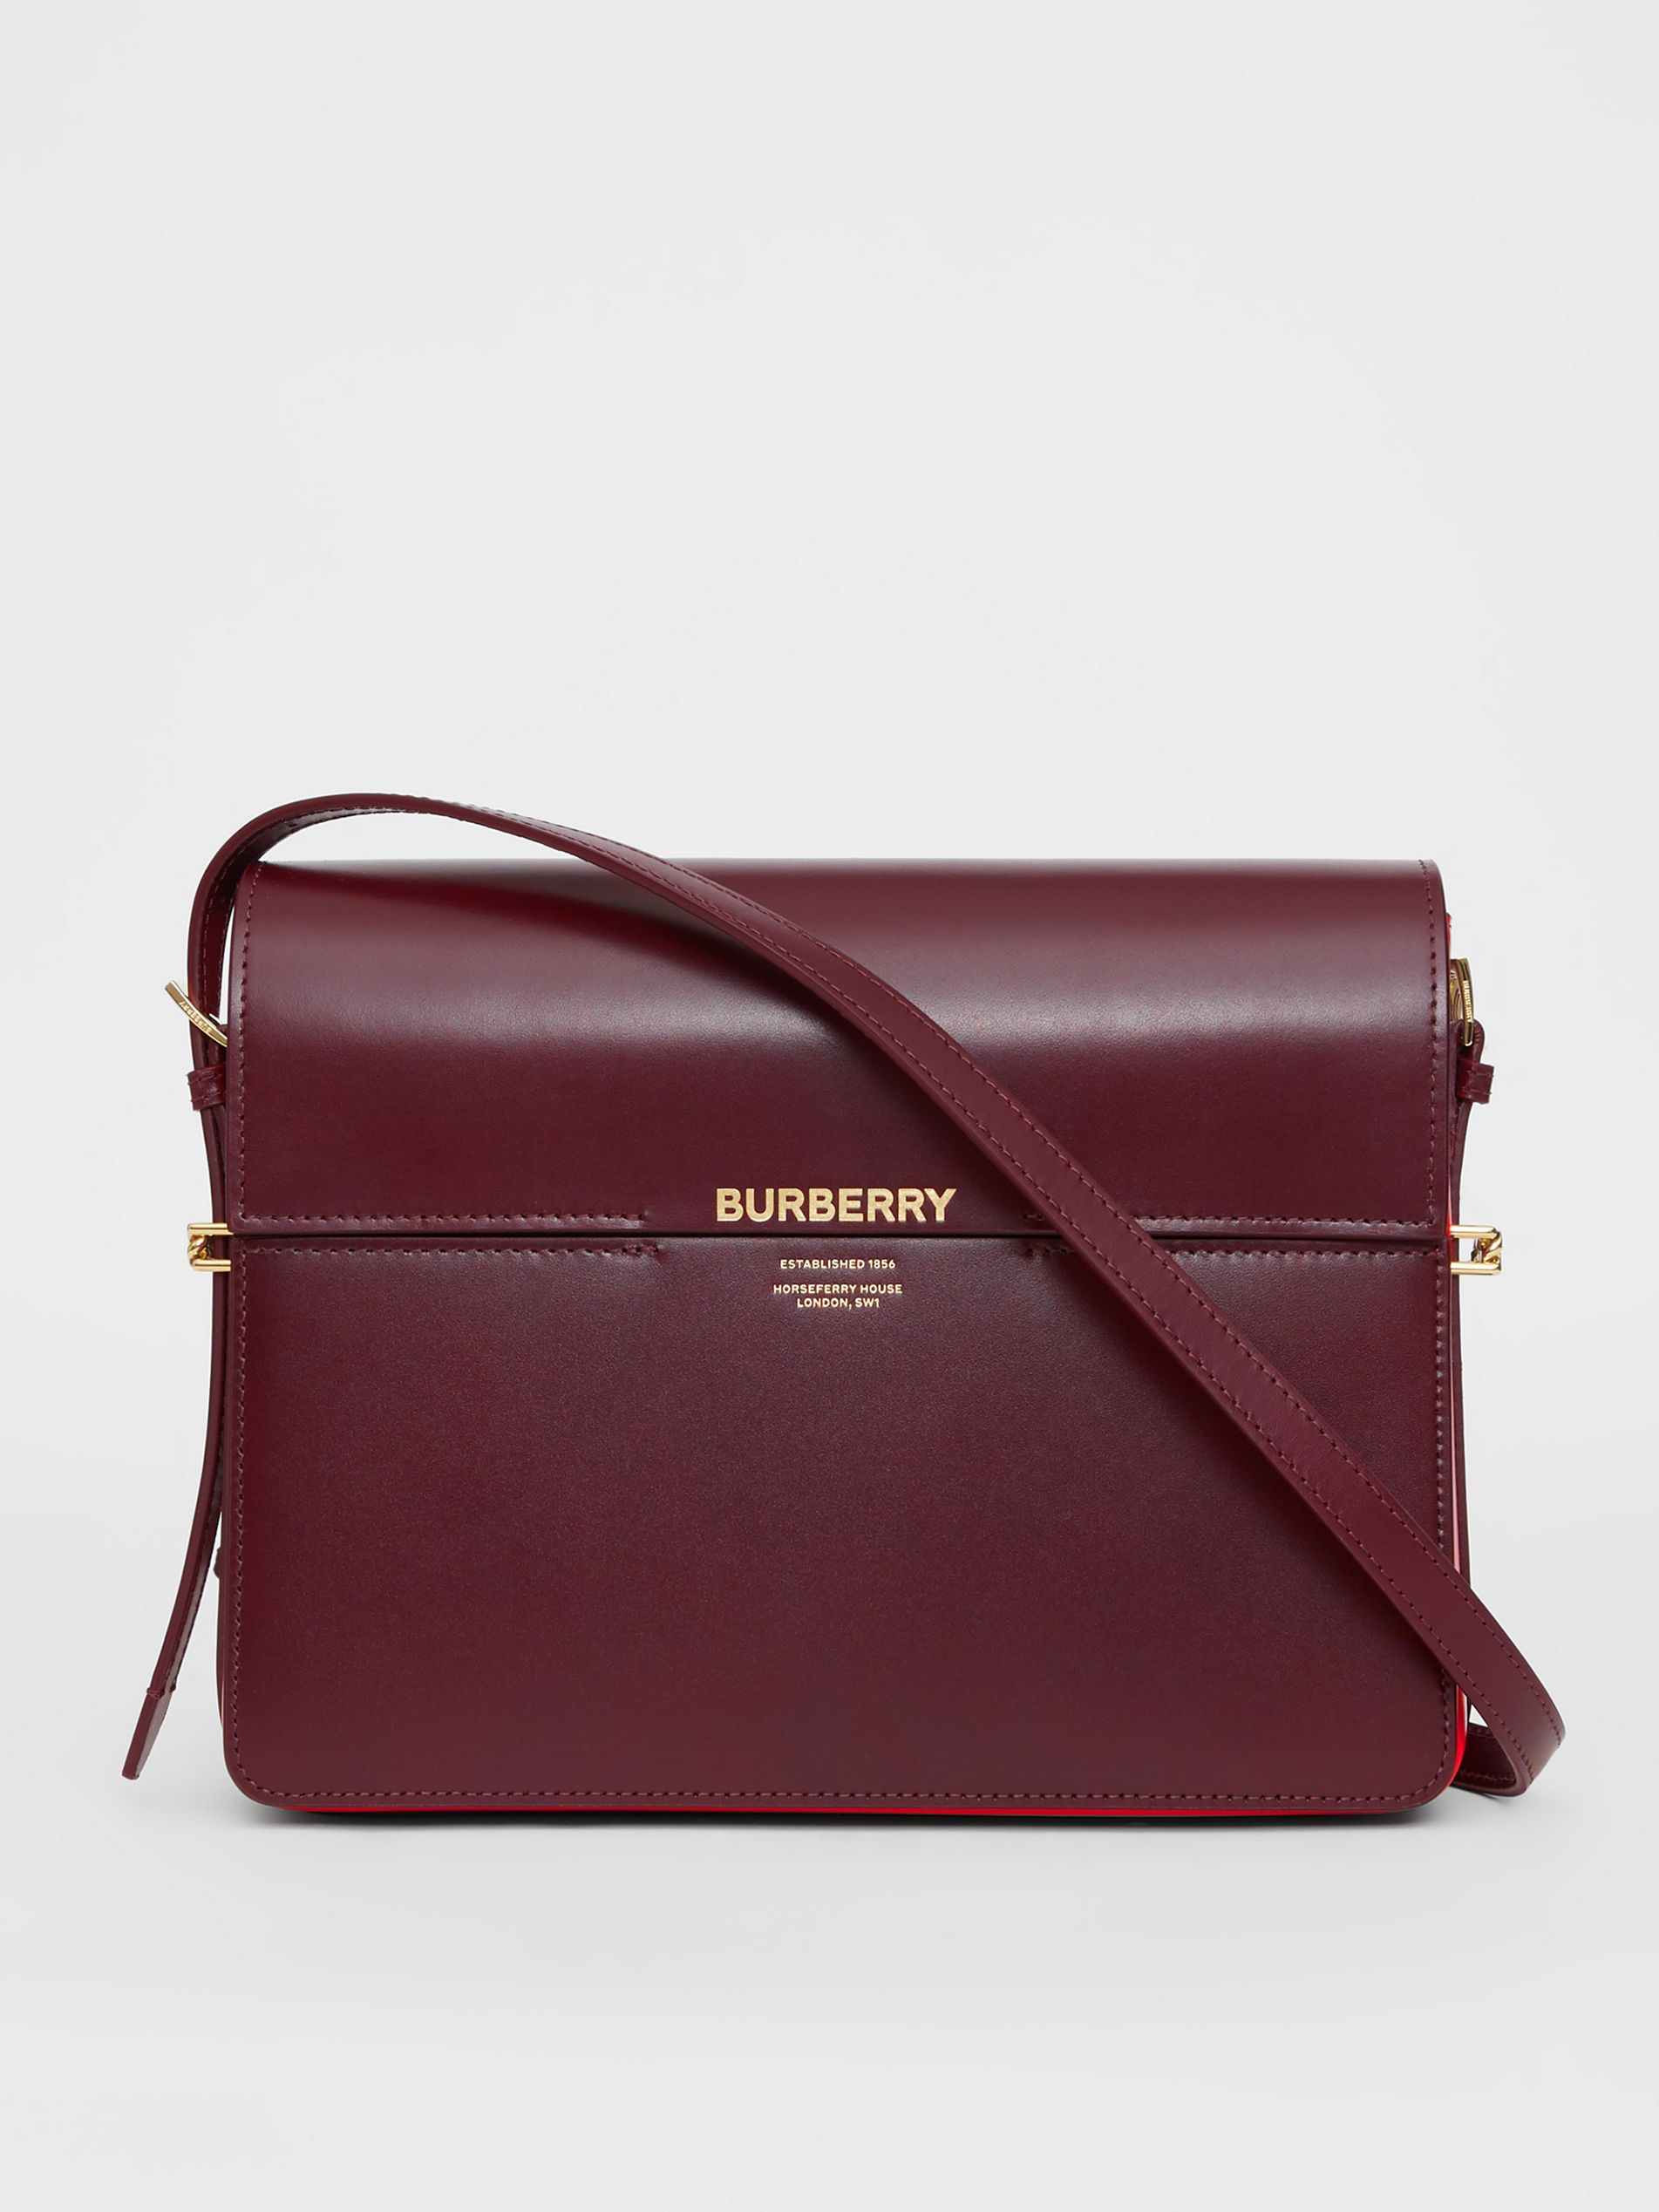 bff9589dc43e0 Burberry Large Two-Tone Leather Grace Bag In Oxblood/Br Milit Red ...